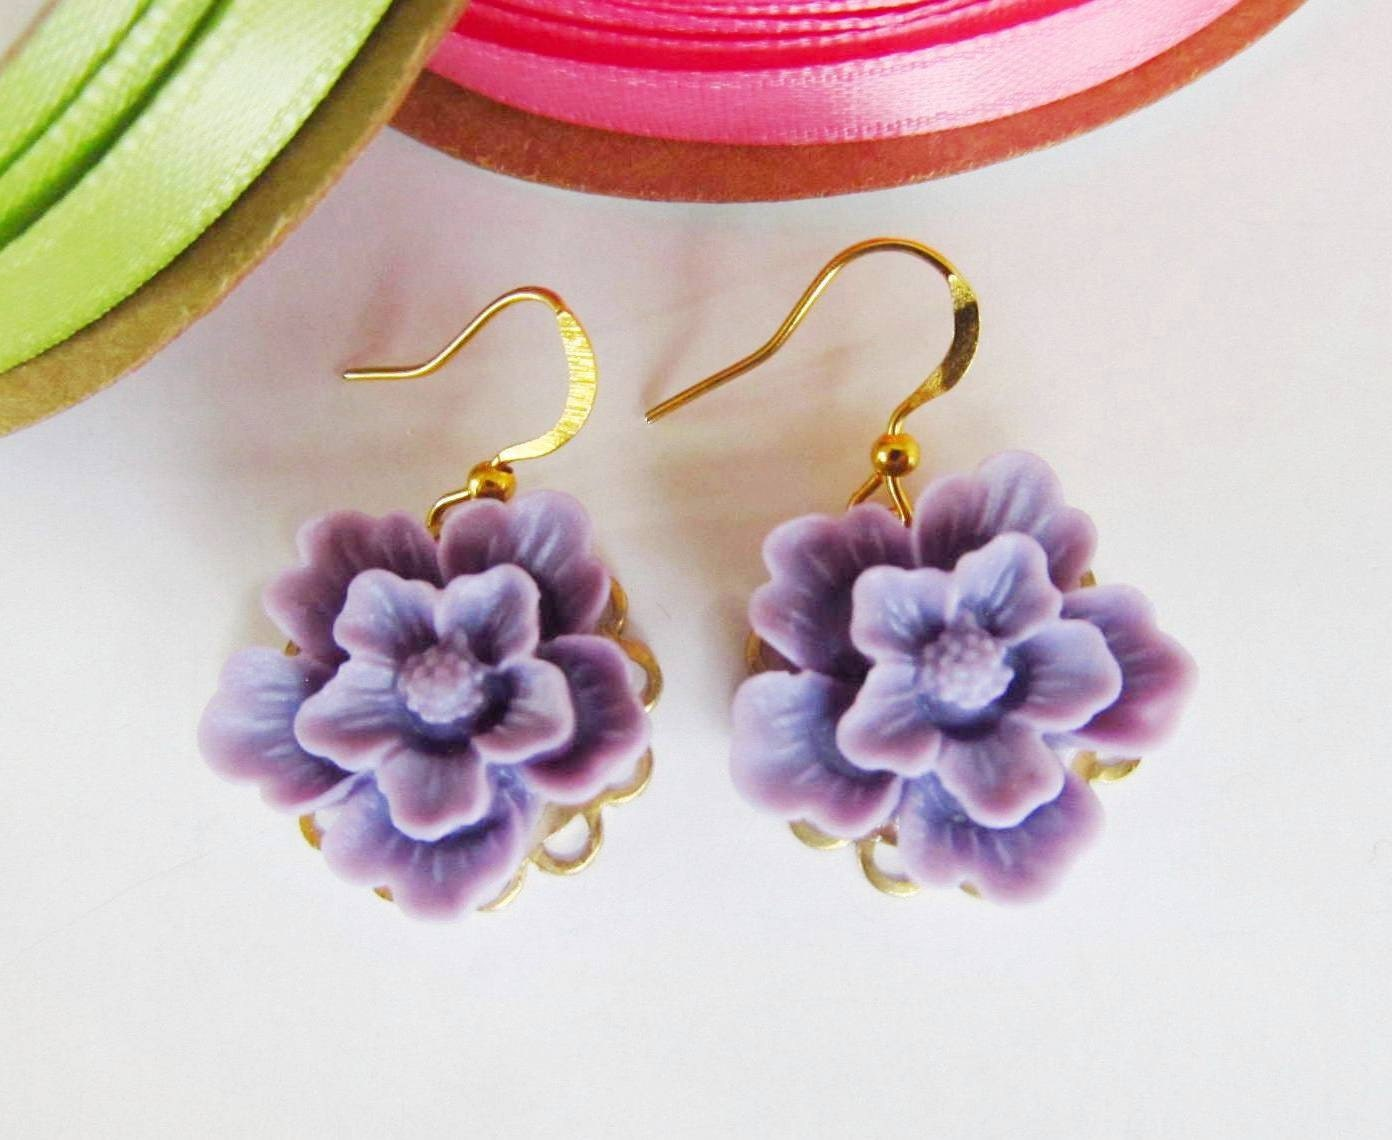 Lavender flower earrings, Simple and Romantic Earrings, lavender, gold plated wire hook, great gift for holiday